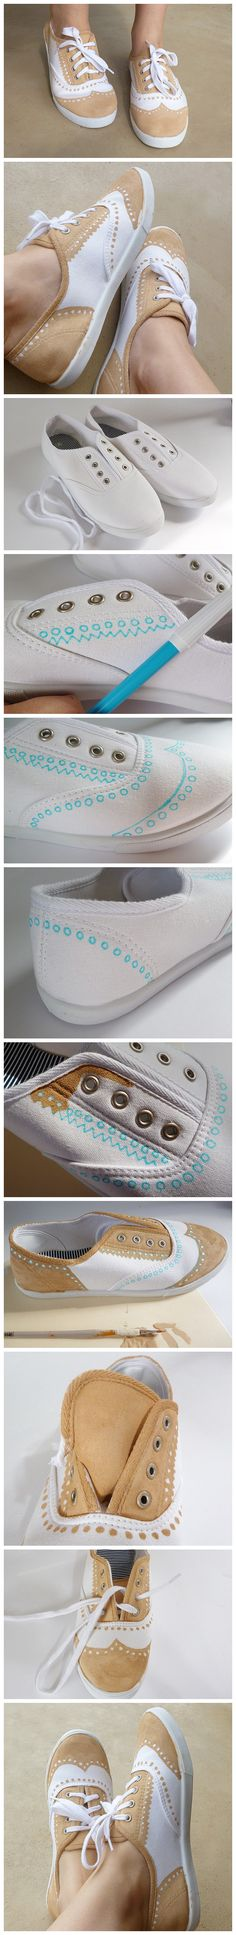 Oh the possibilities of paint on white sneakers.